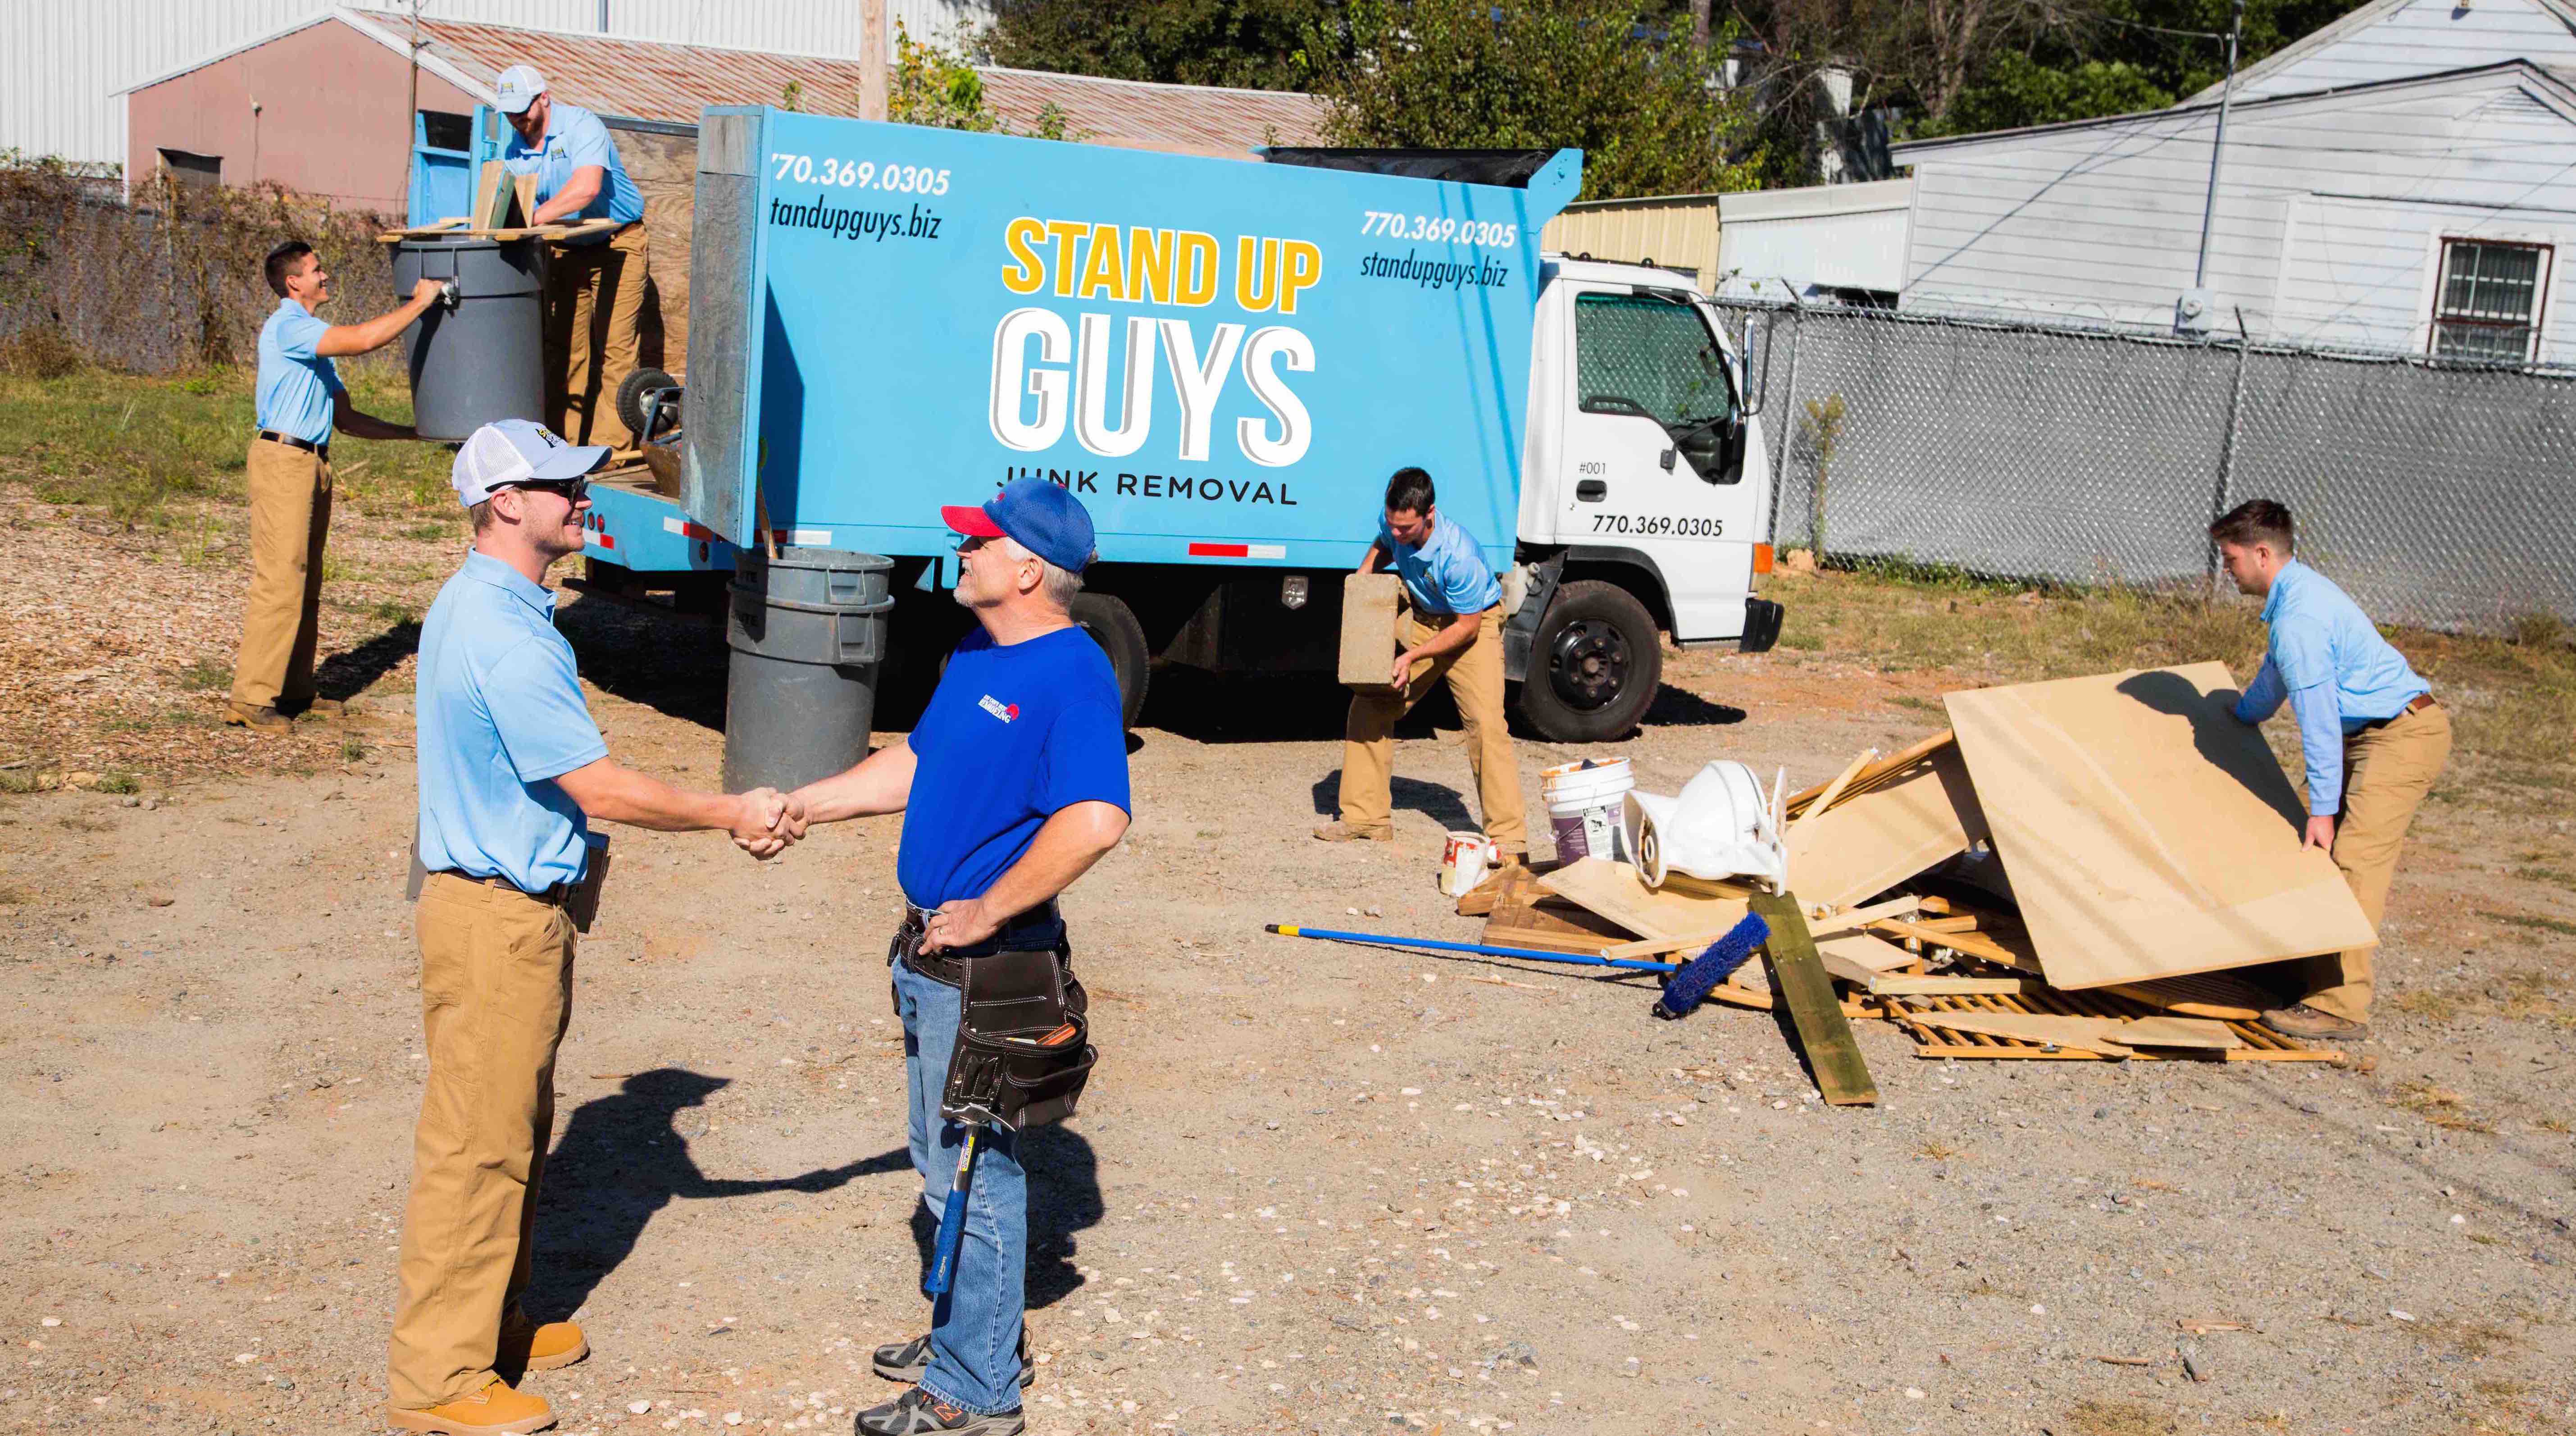 Stand Up Guys East Cobb Junk Removal